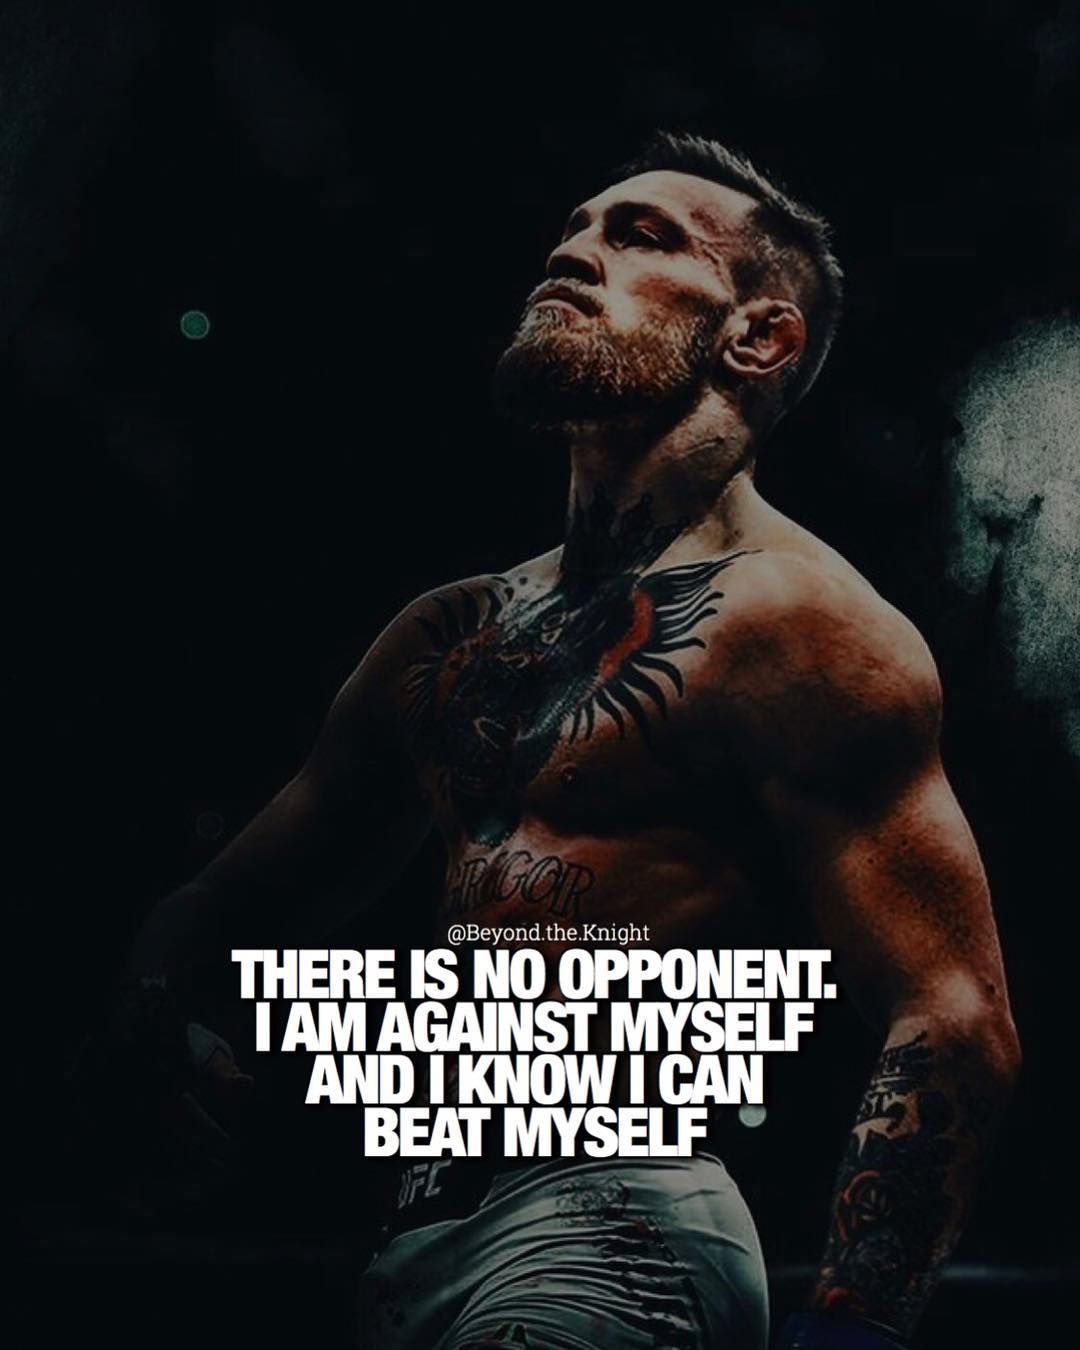 Fastest Gorilla Growing Selfdevelopment Wealthy Website In 2020 Conor Mcgregor Quotes Inspirational Quotes Pictures Hustle Quotes Motivation